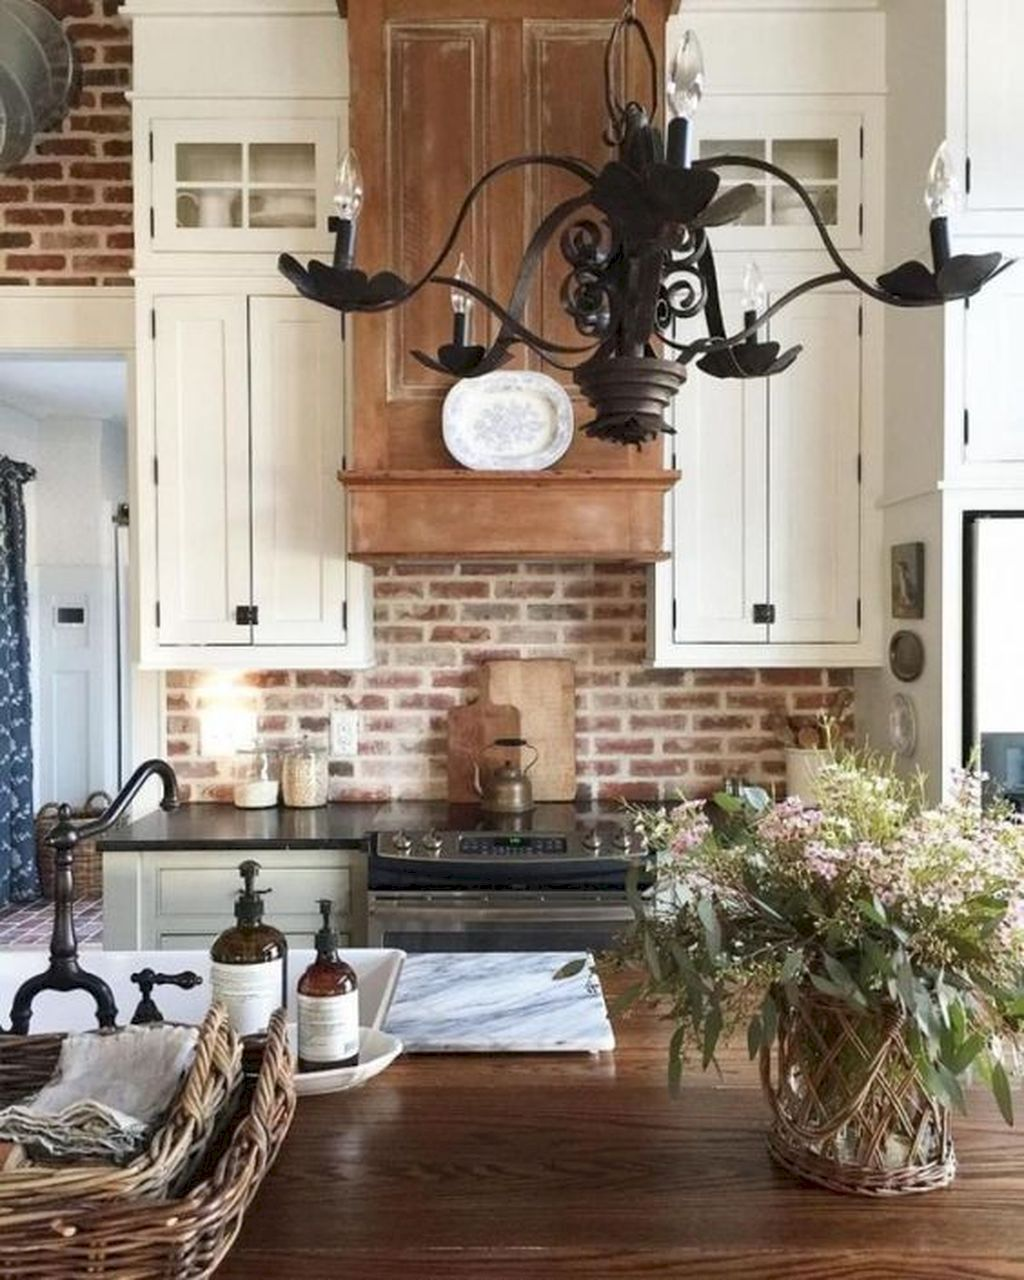 The Best Ideas To Decorate Interior Design With Farmhouse Style 14